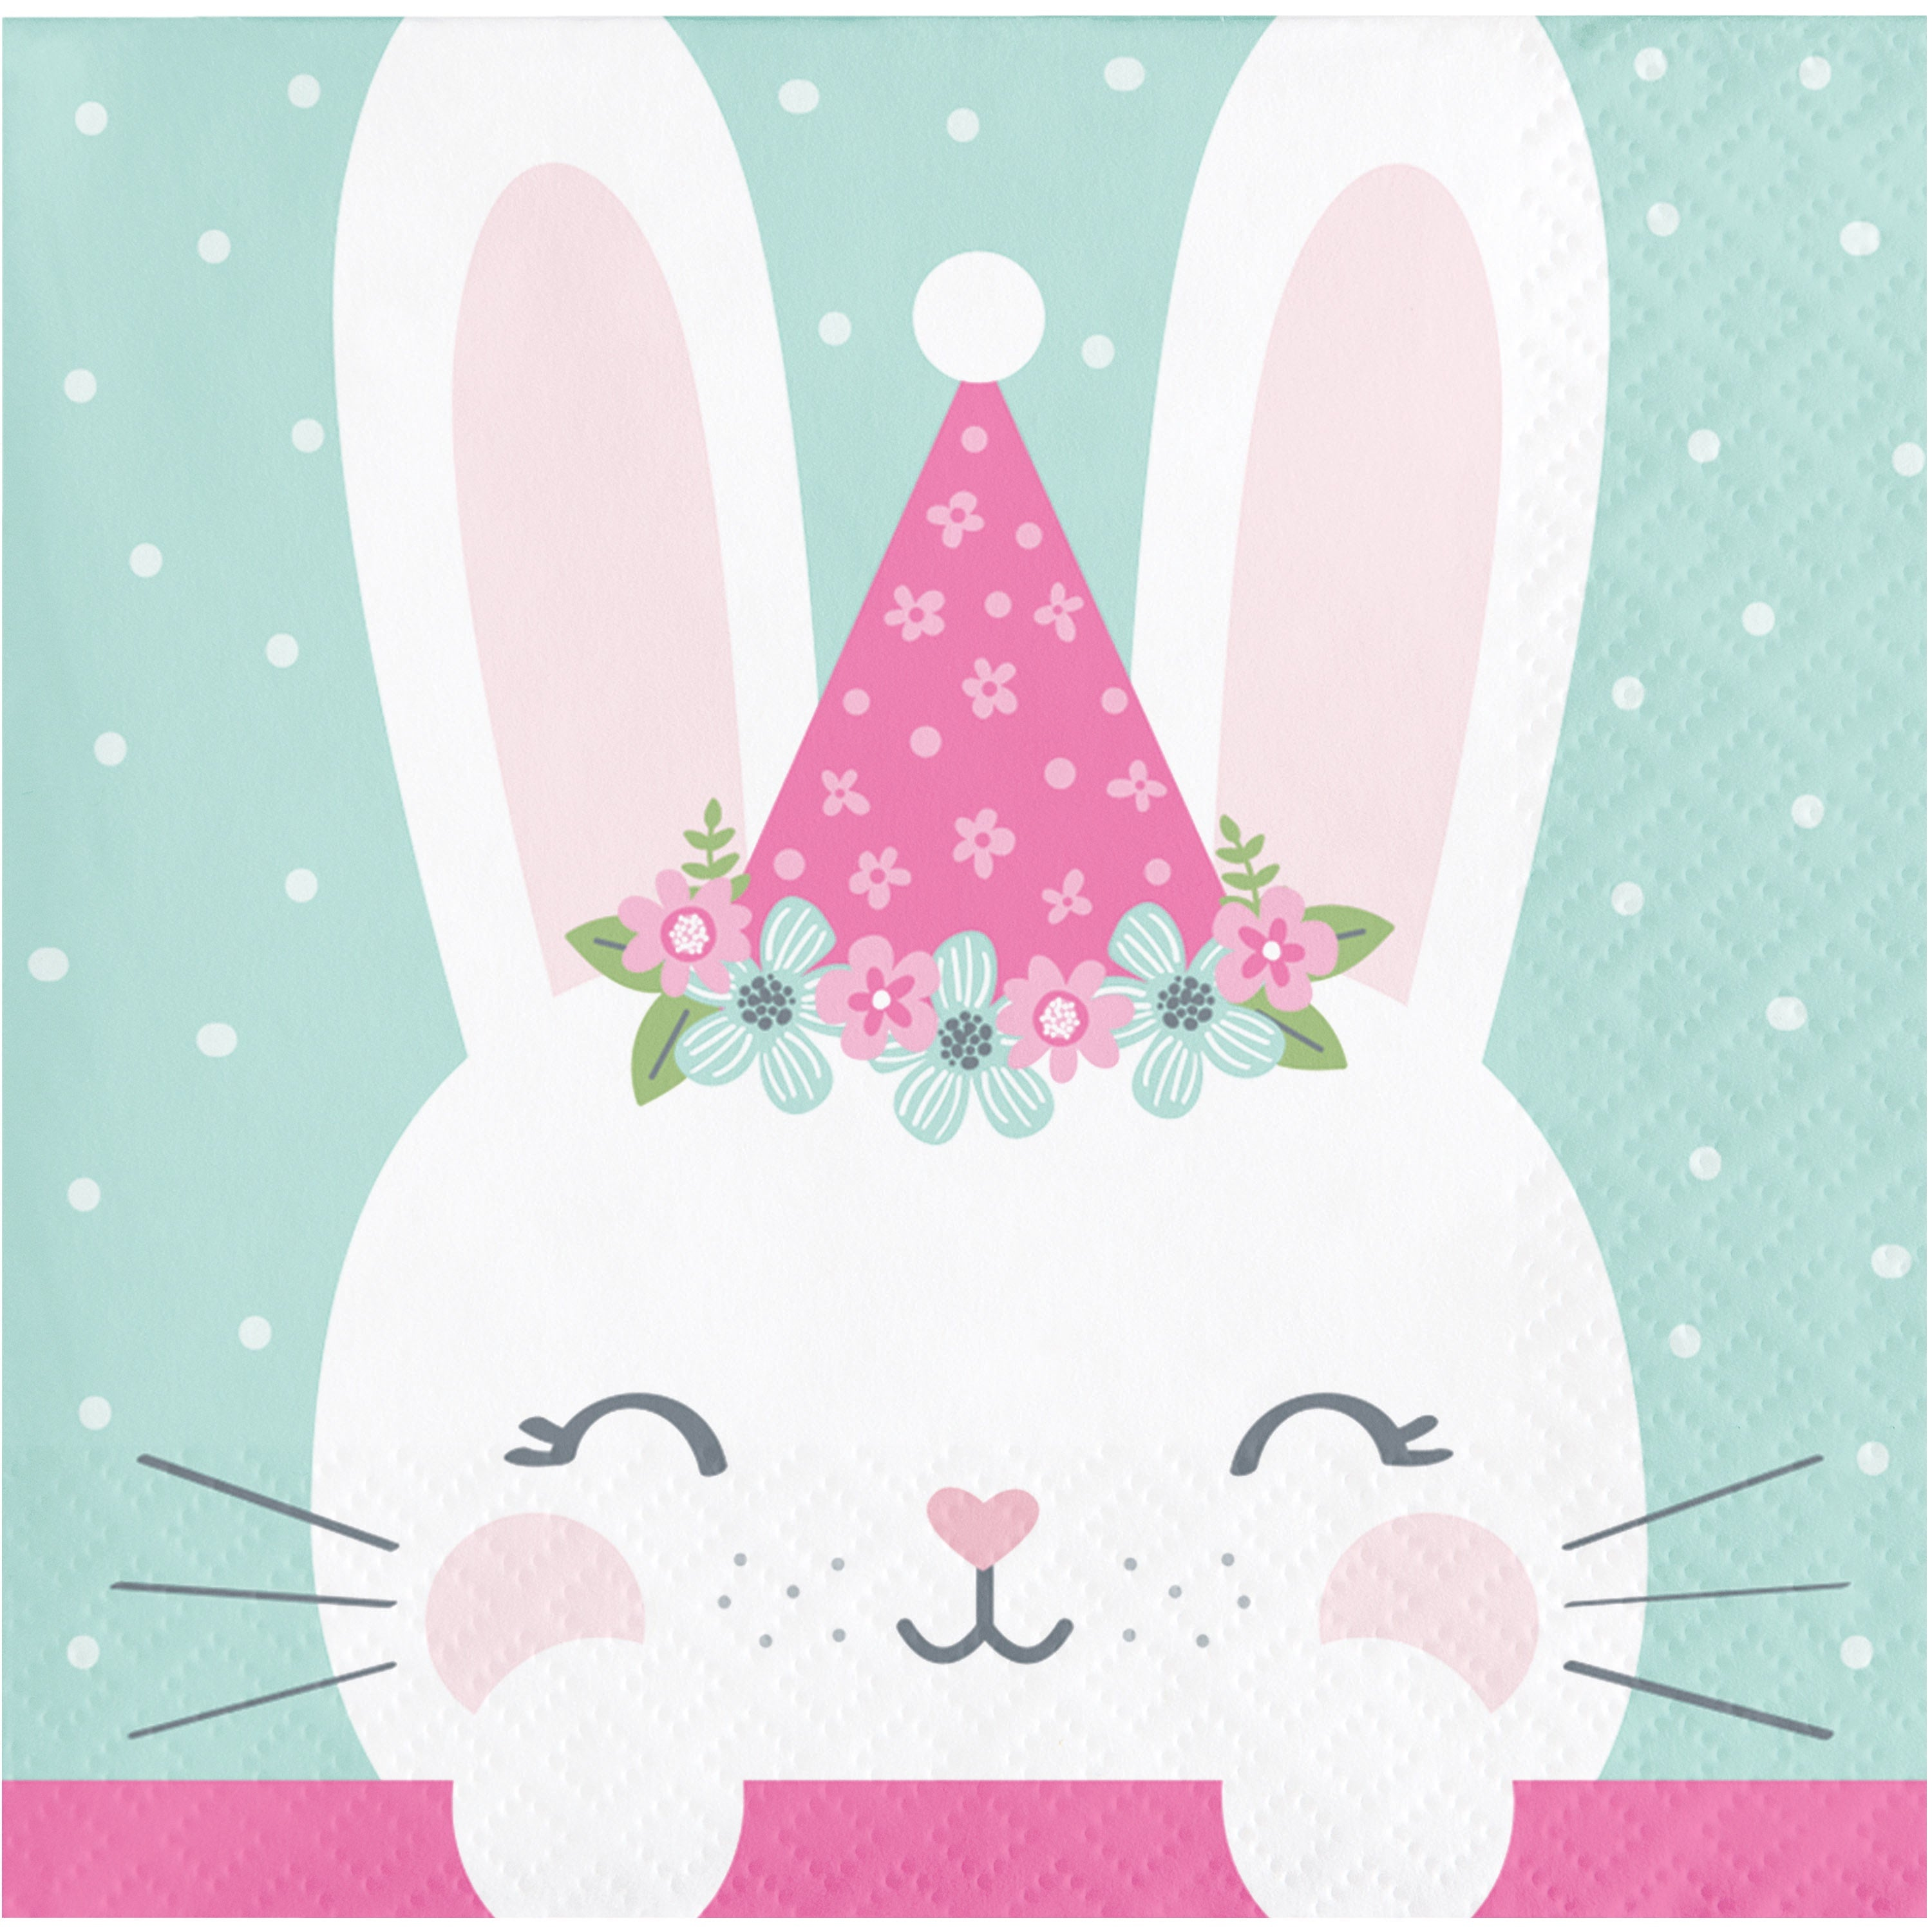 BN 12/16CT 2P 1ST HAT BIRTHDAY BUNNY BKF